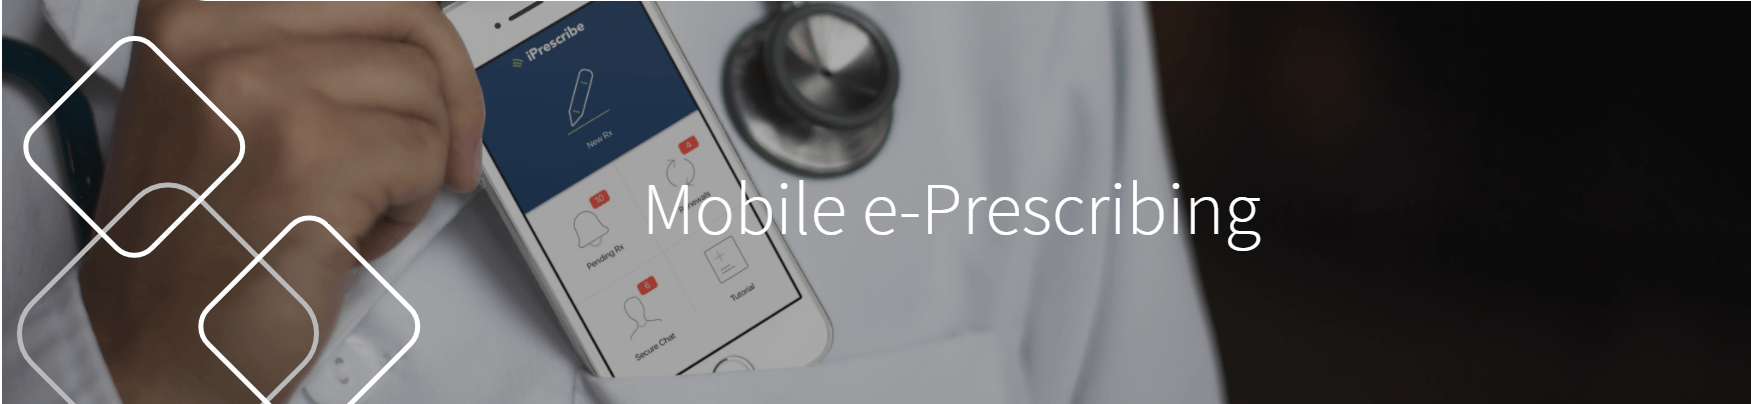 DrFirst Enables Free Mobile Med Management Tool To Help Hurricane Harvey,Irma Victims